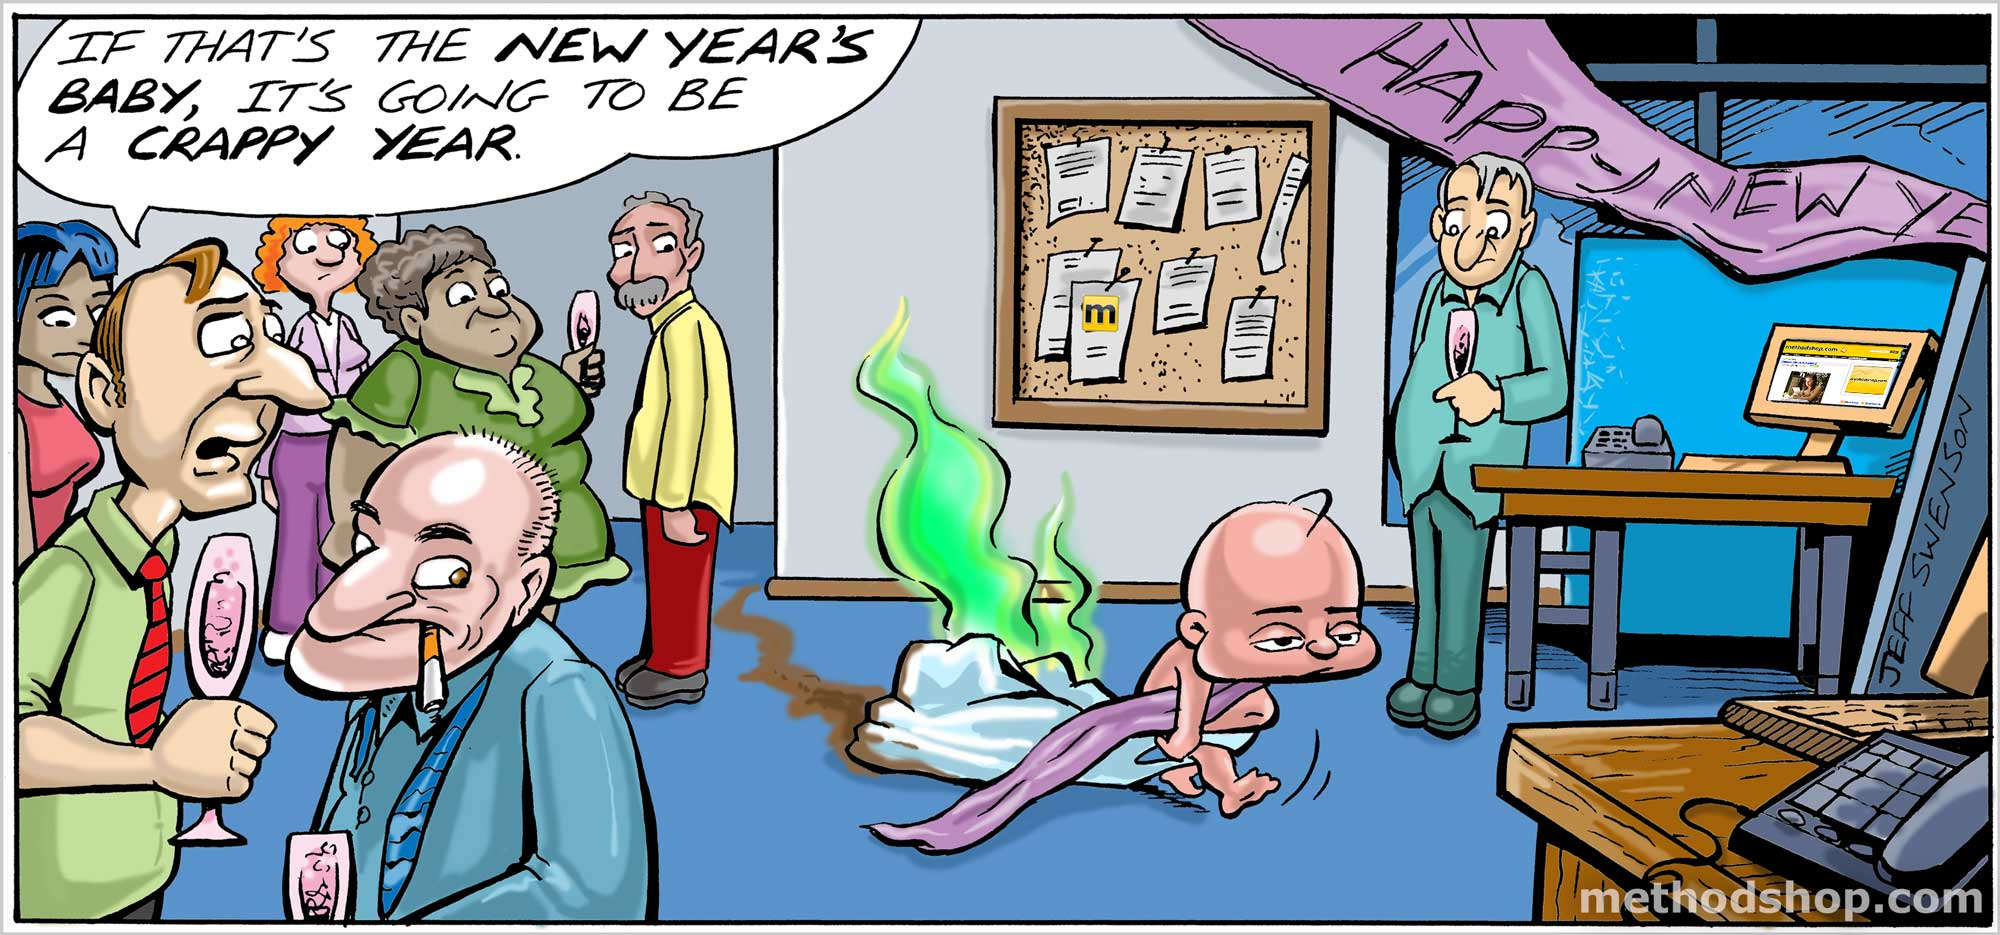 Crappy New Year's Baby